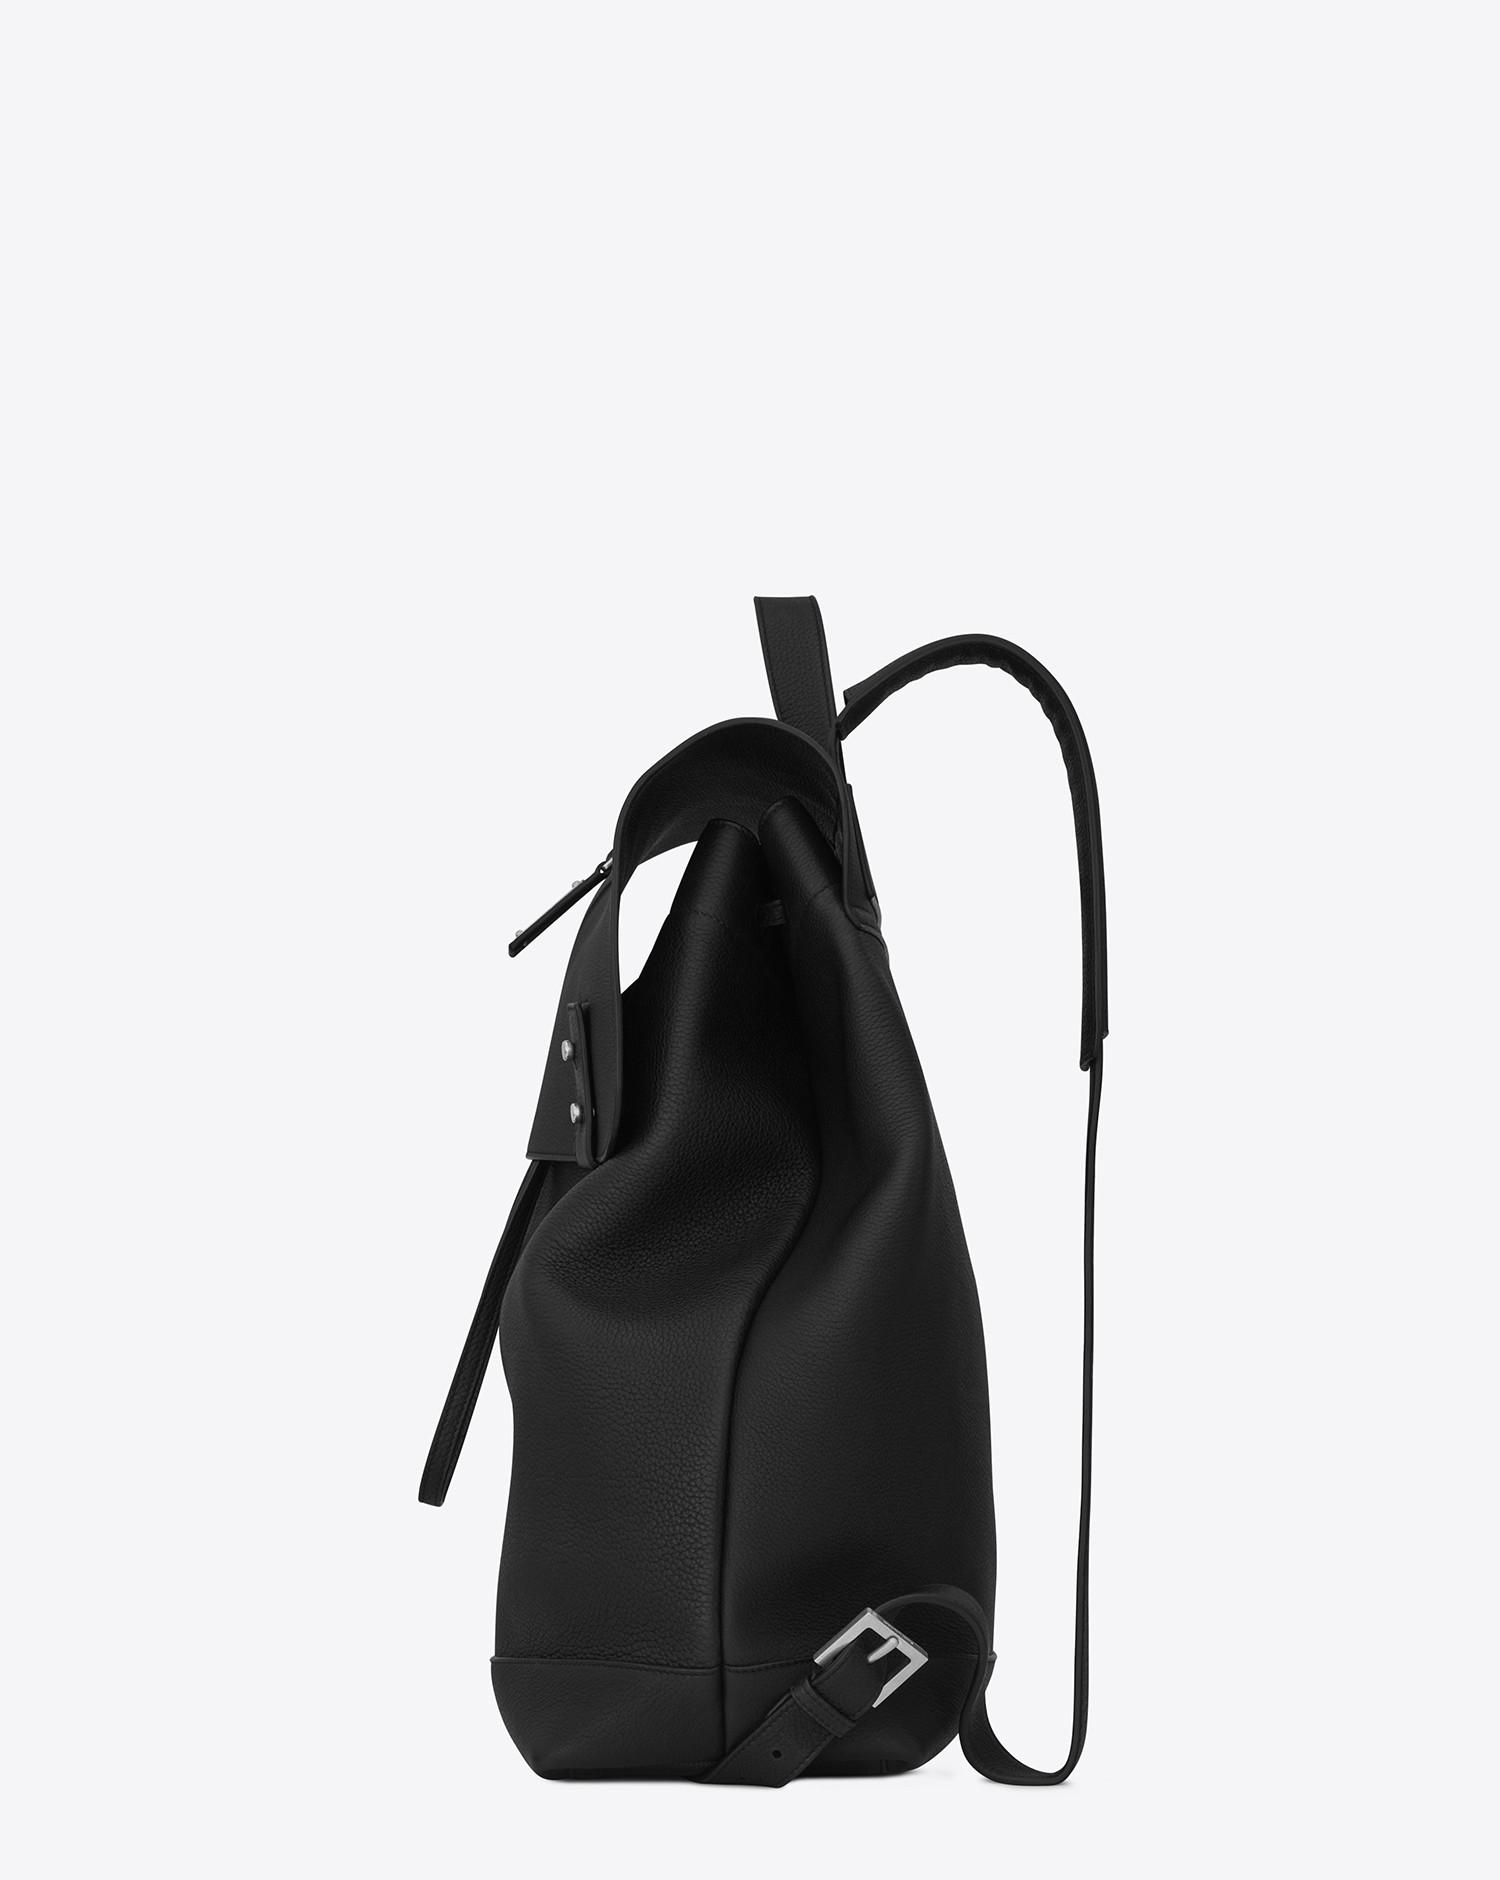 6271e1e84d5 Tap to visit site. Saint Laurent Black Sac De Jour Backpack In Grained  Leather for men